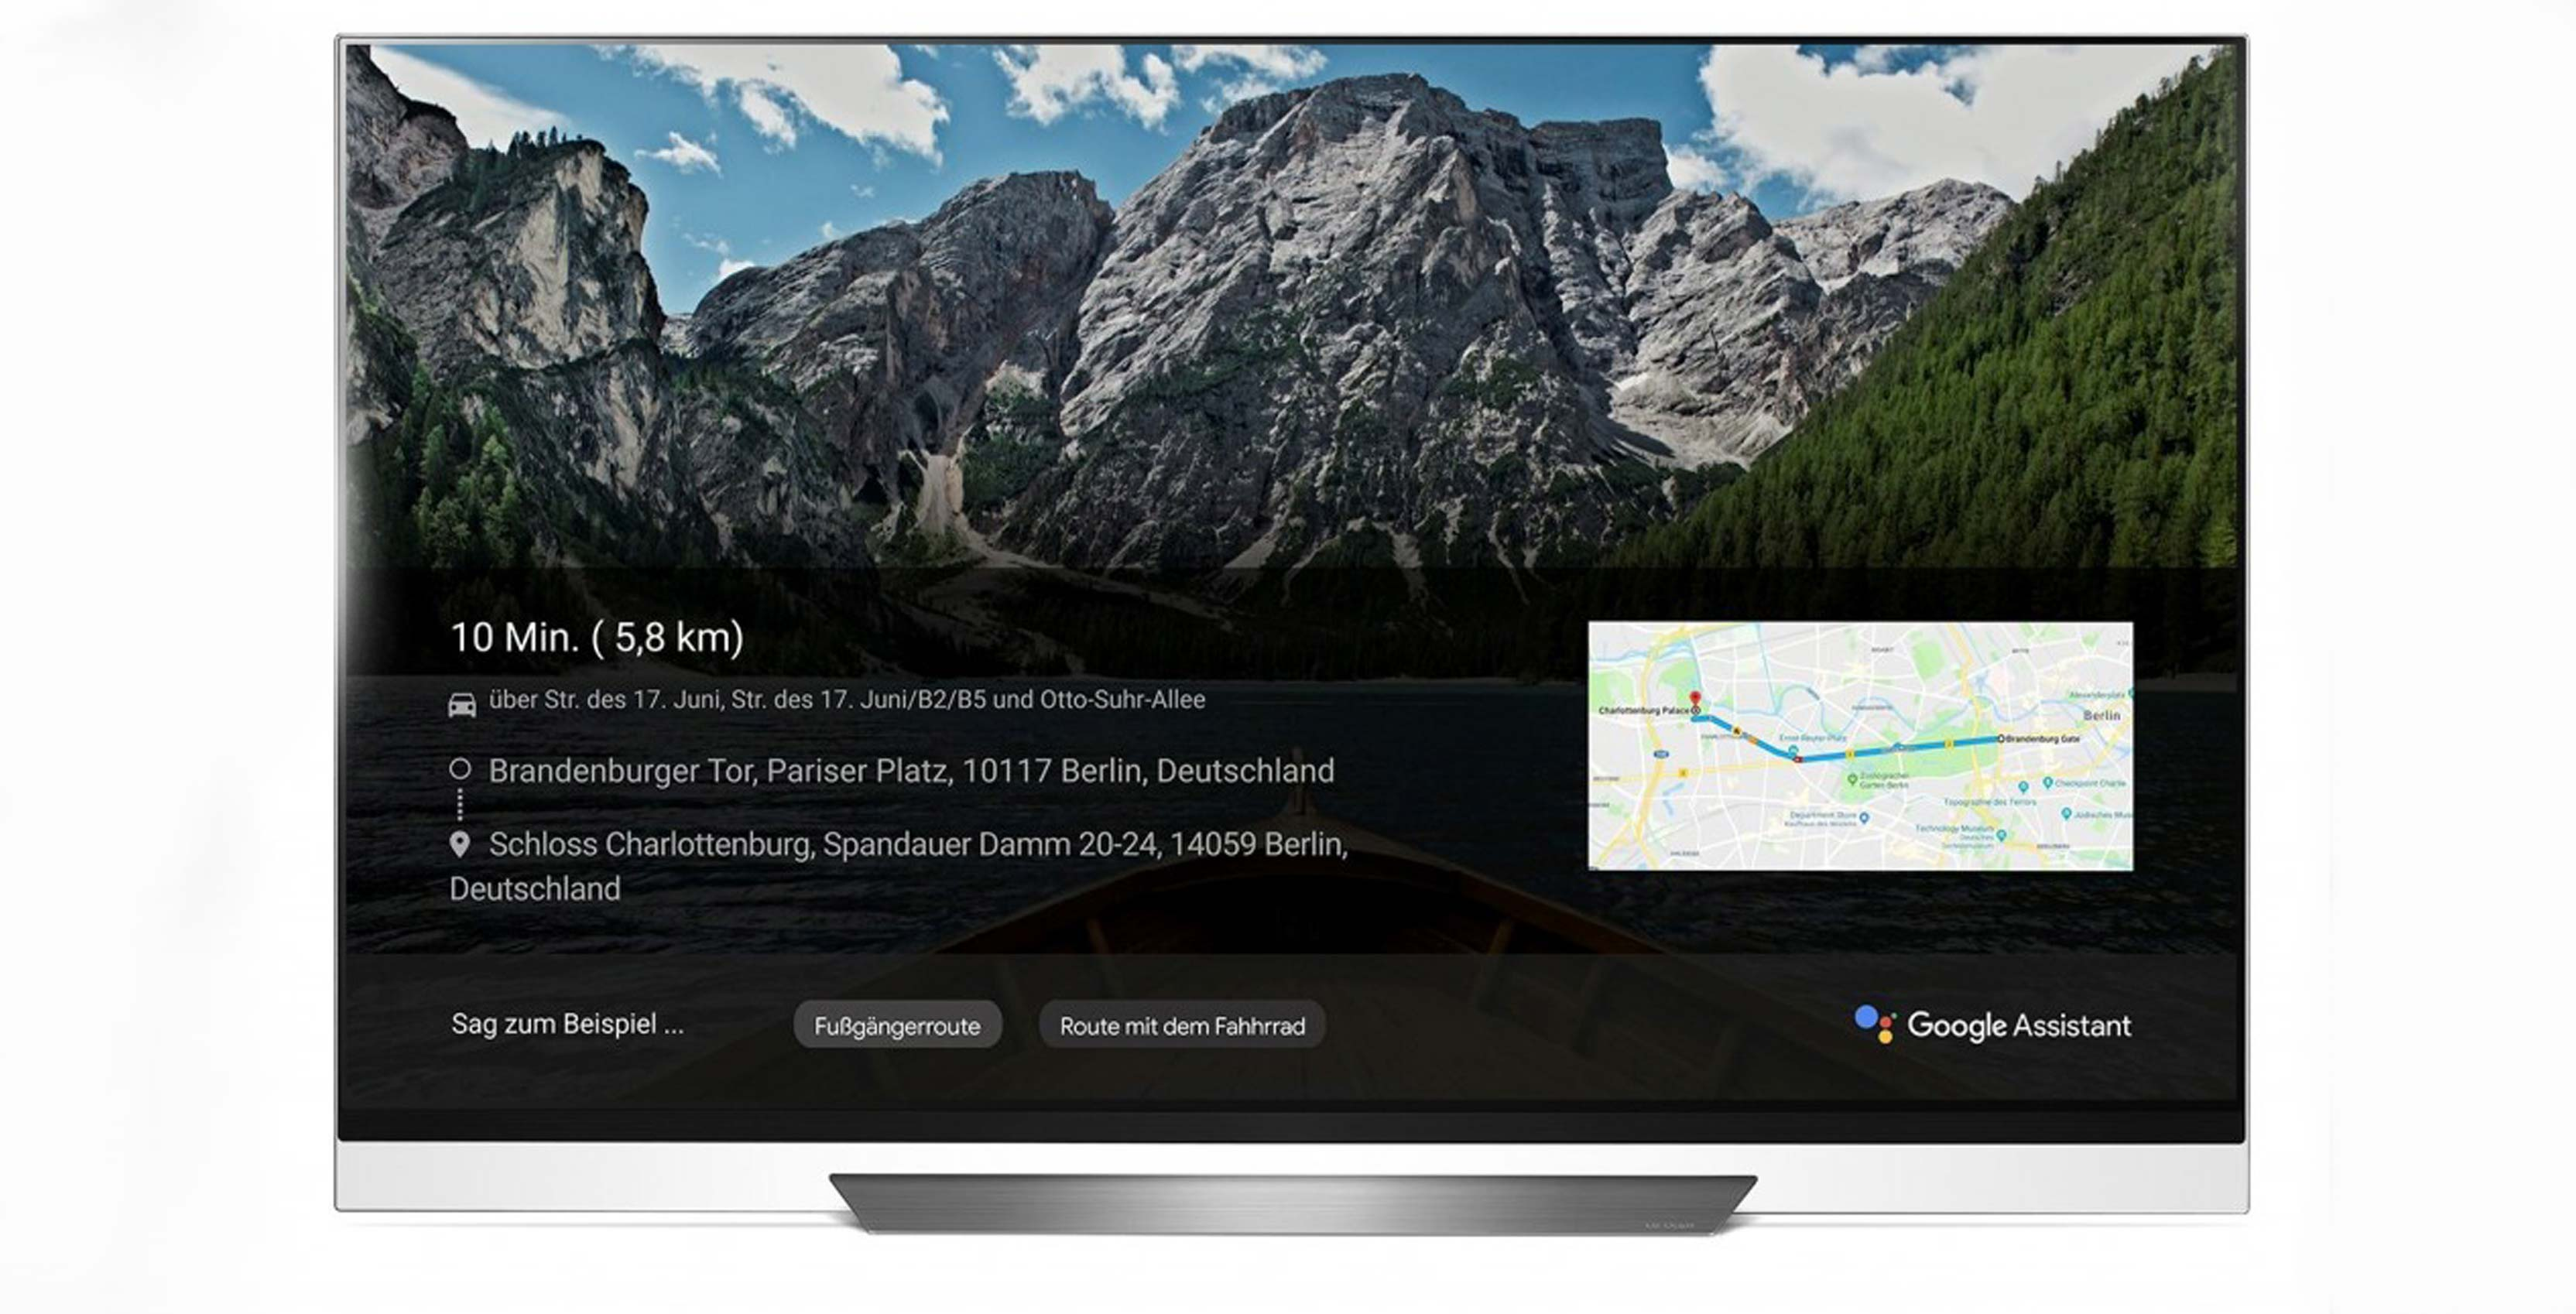 LG ThinQ TV with Google Assistant